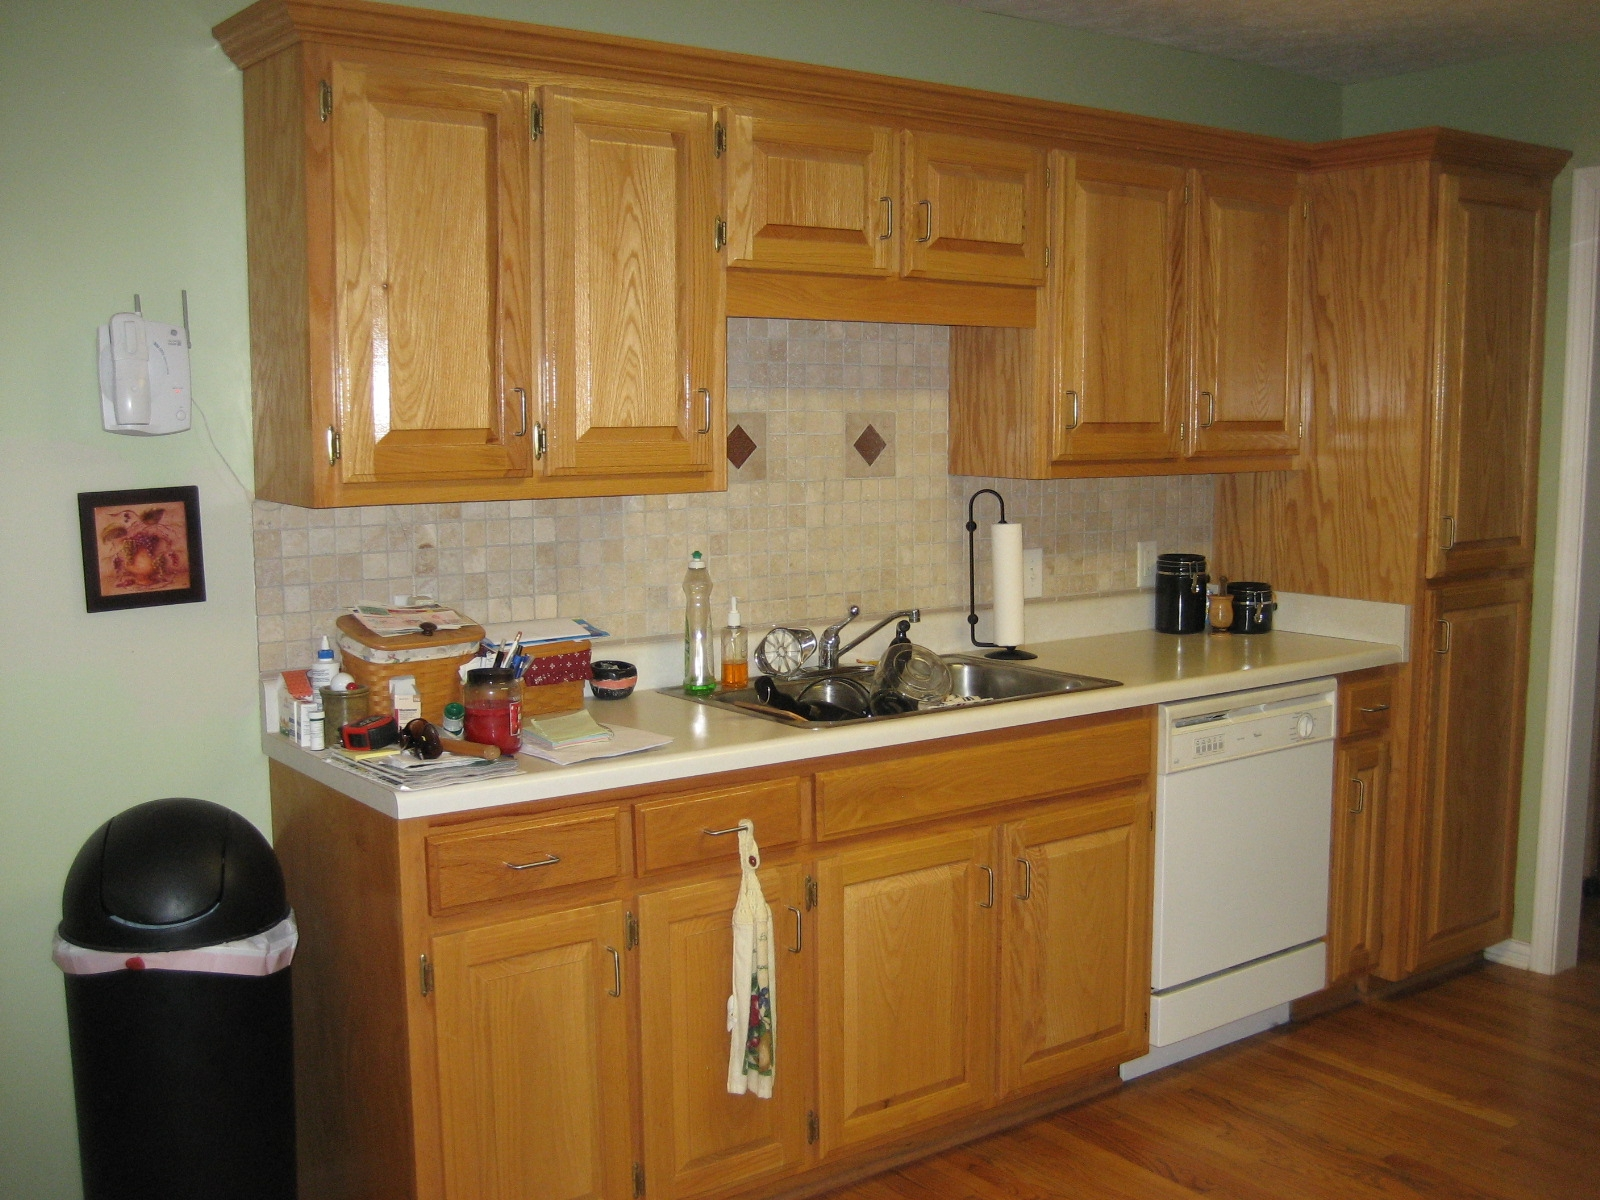 Permalink to Interior Design Kitchen Oak Cabinets